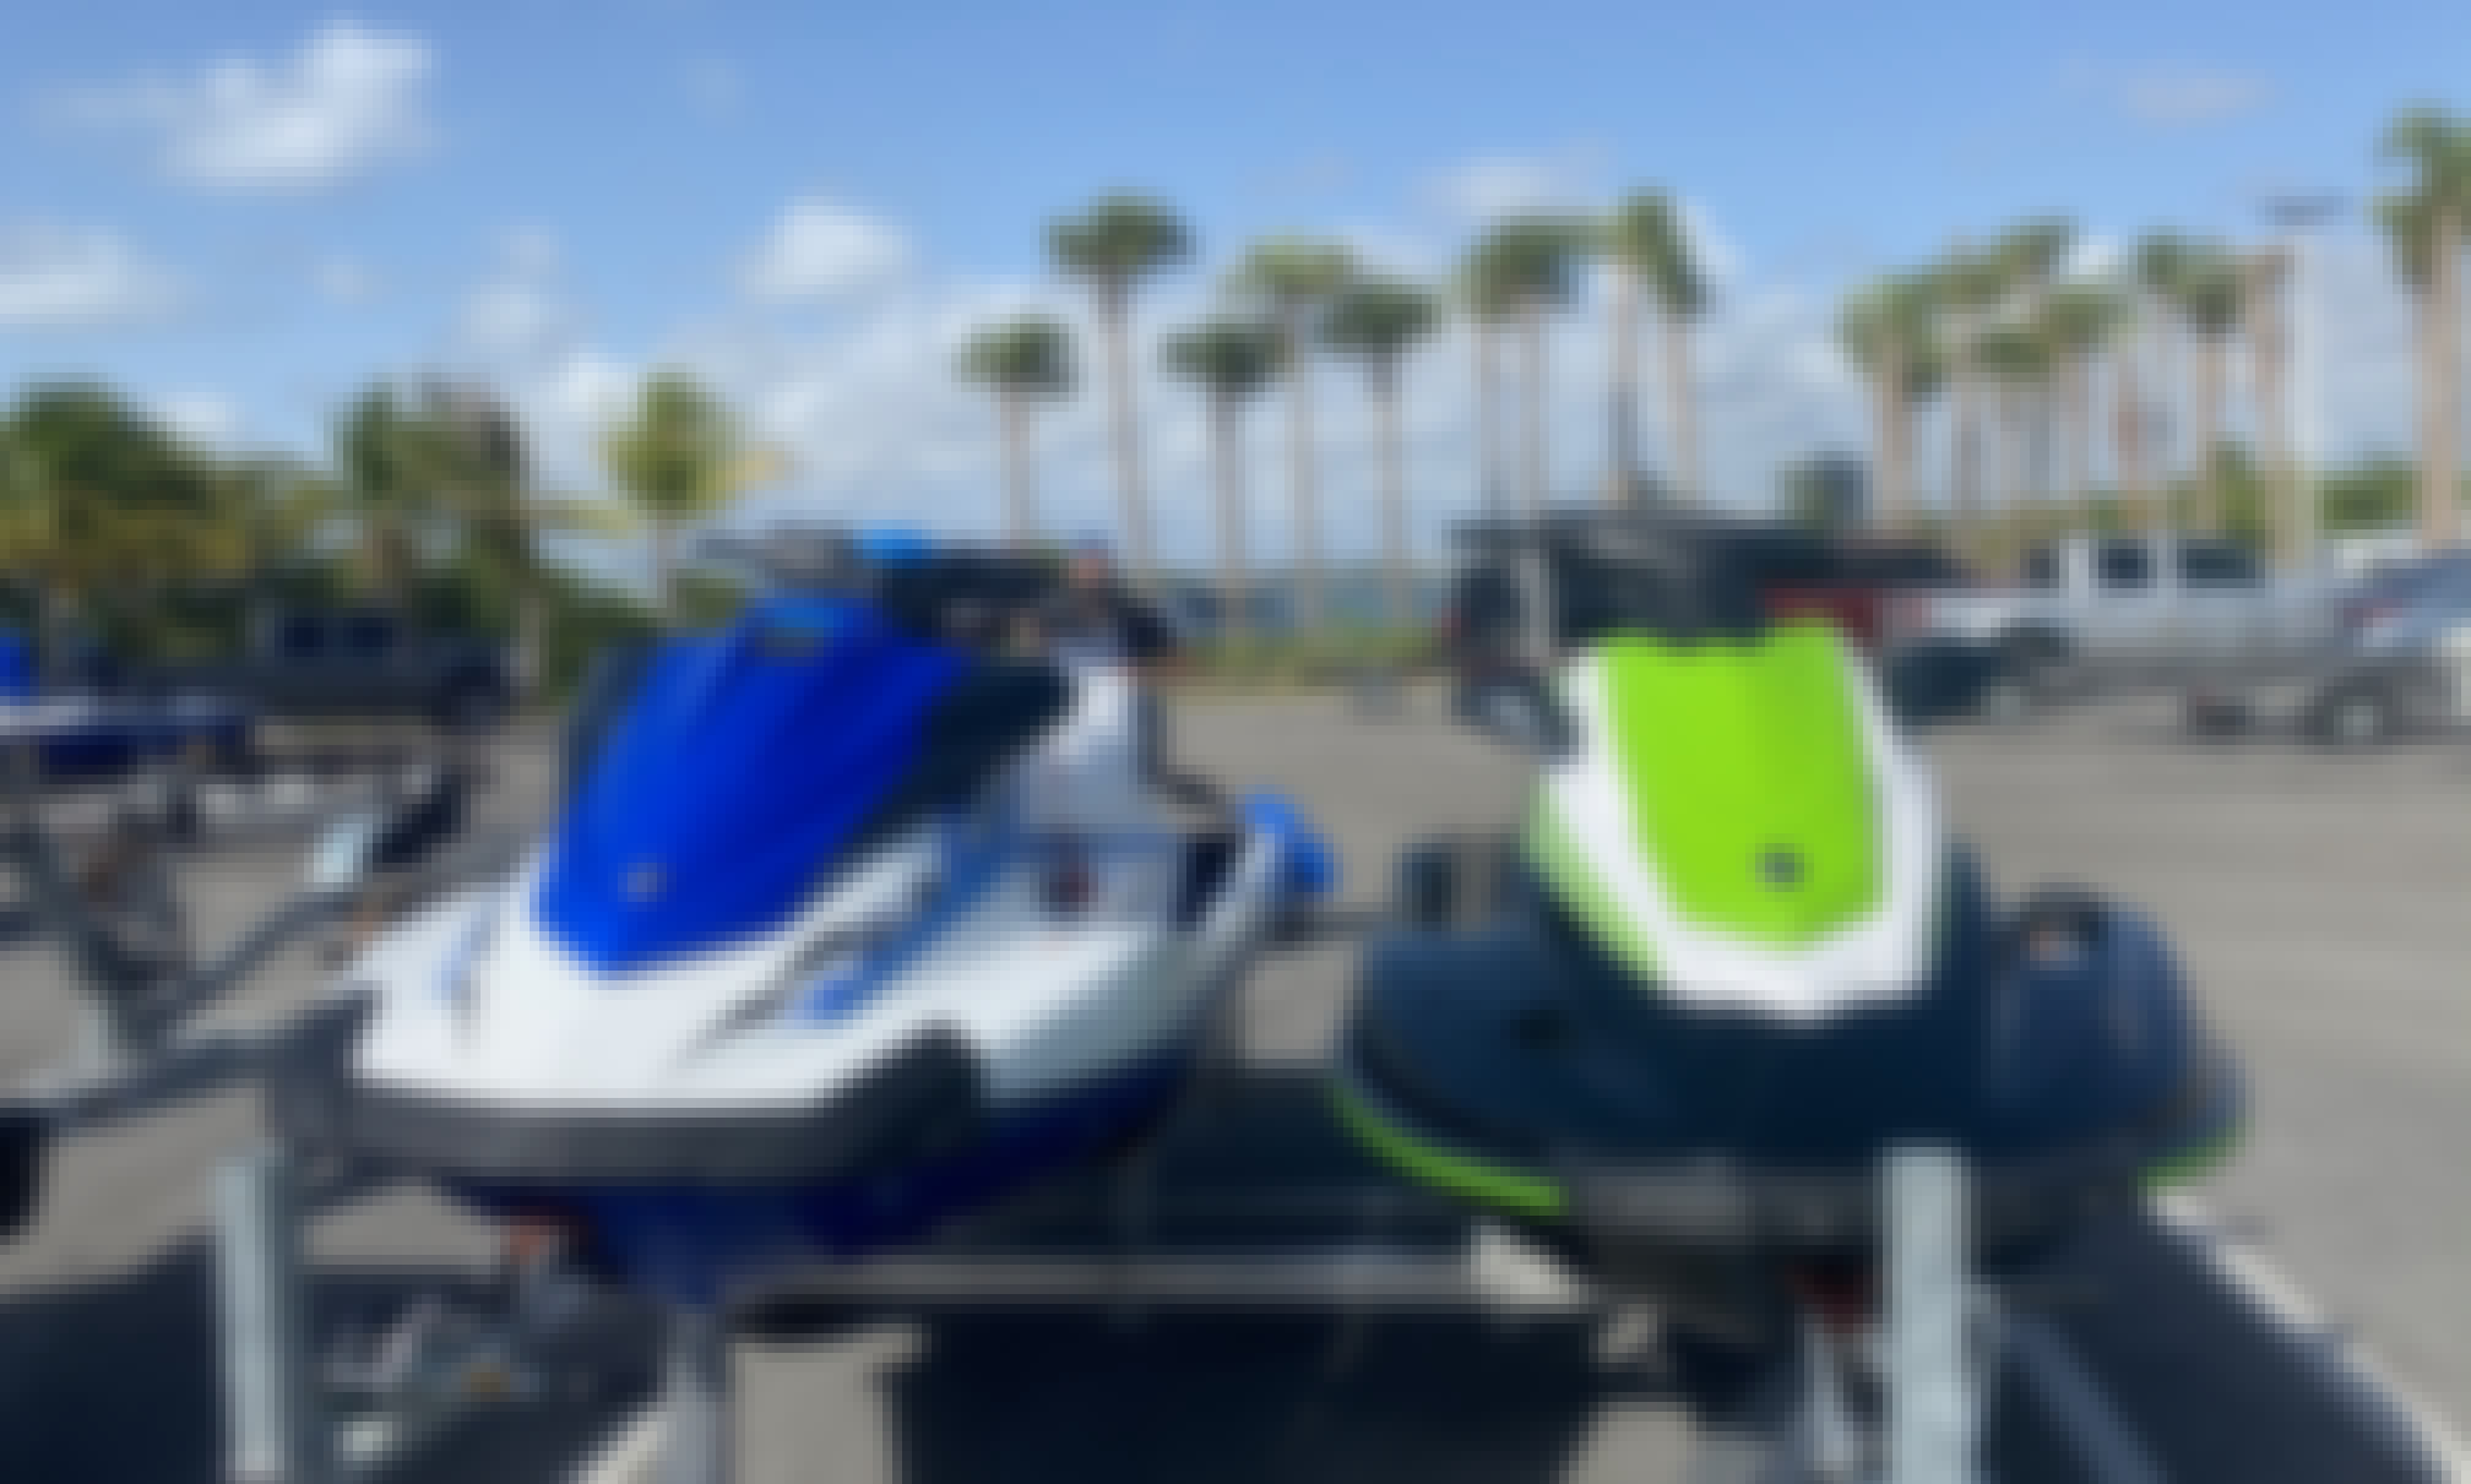 Brandnew Yamaha Waverunner in Miami Beach